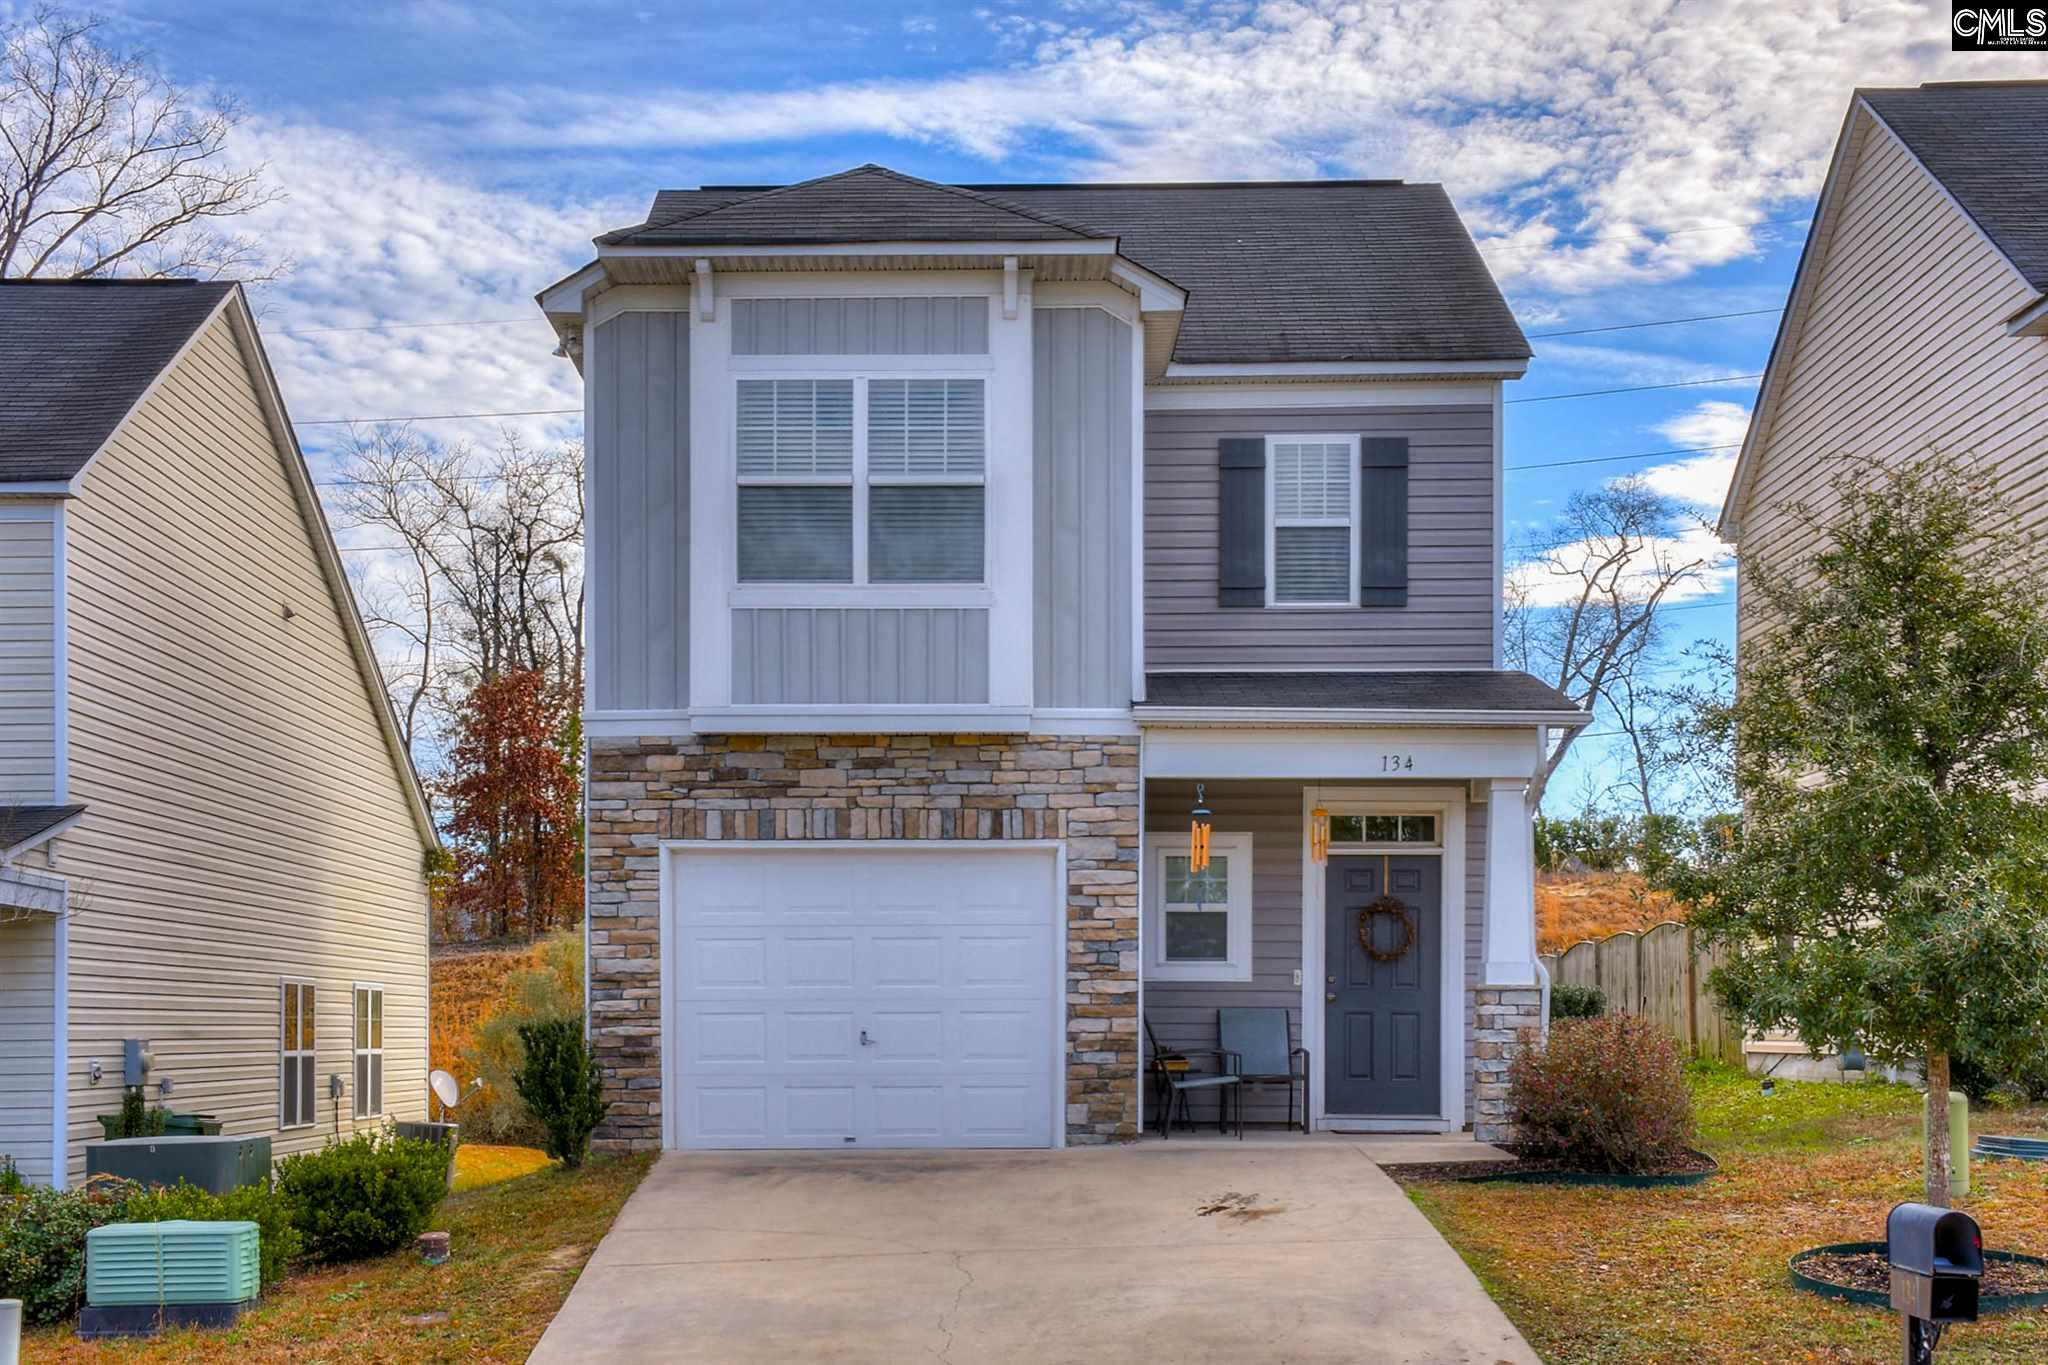 134 Potters View Blythewood, SC 29016